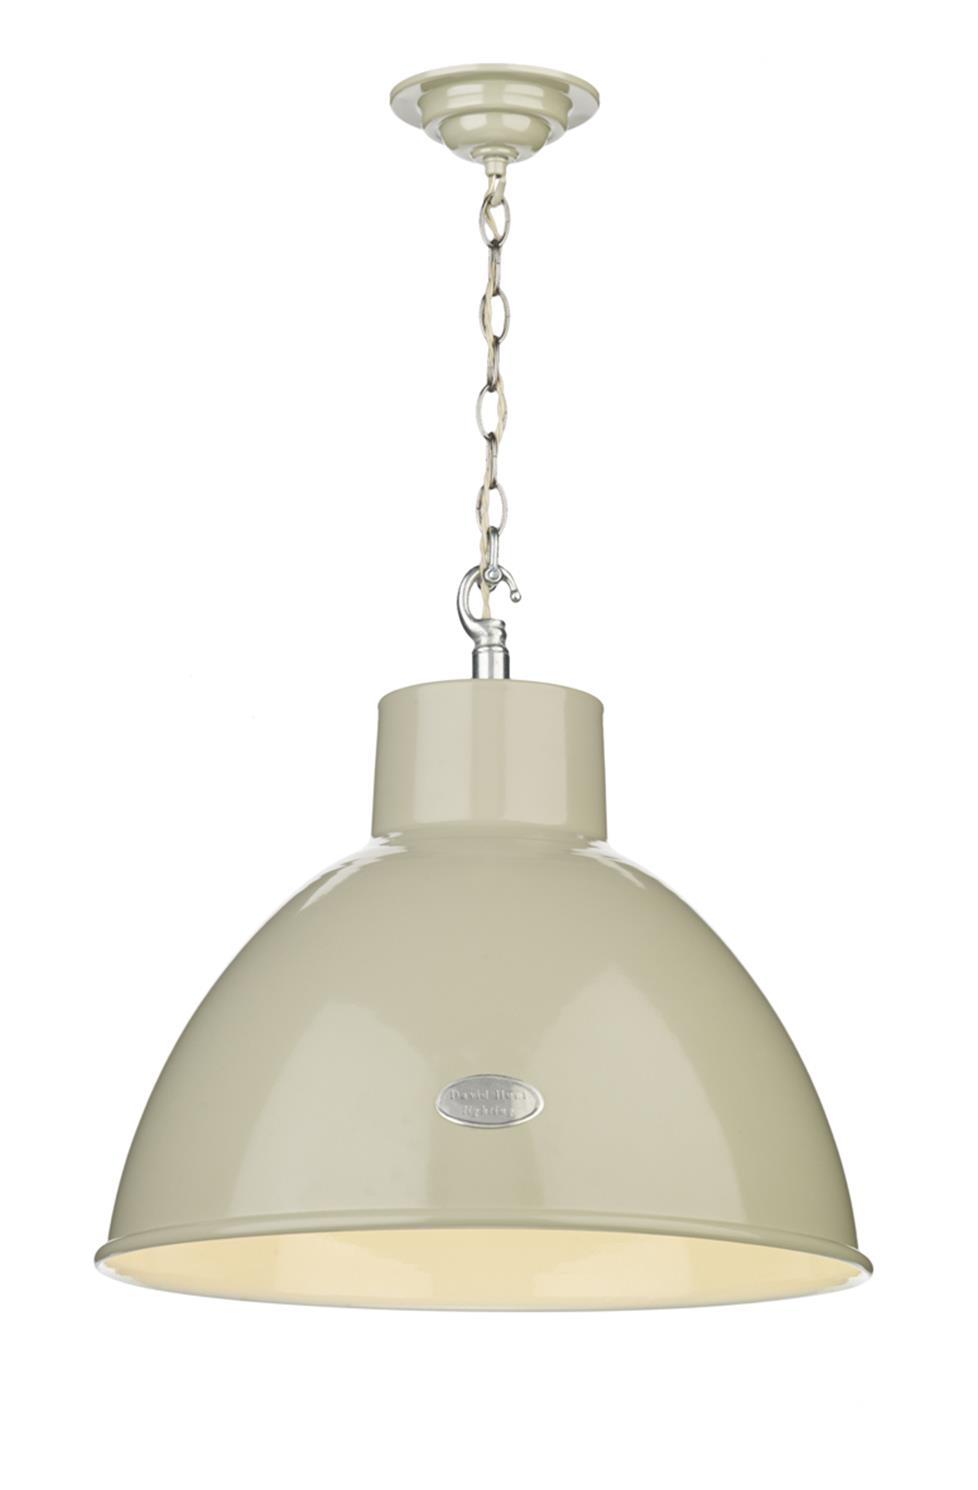 David Hunt Lighting UTI012 Utility 1 Light Large Pendant in French Cream Gloss